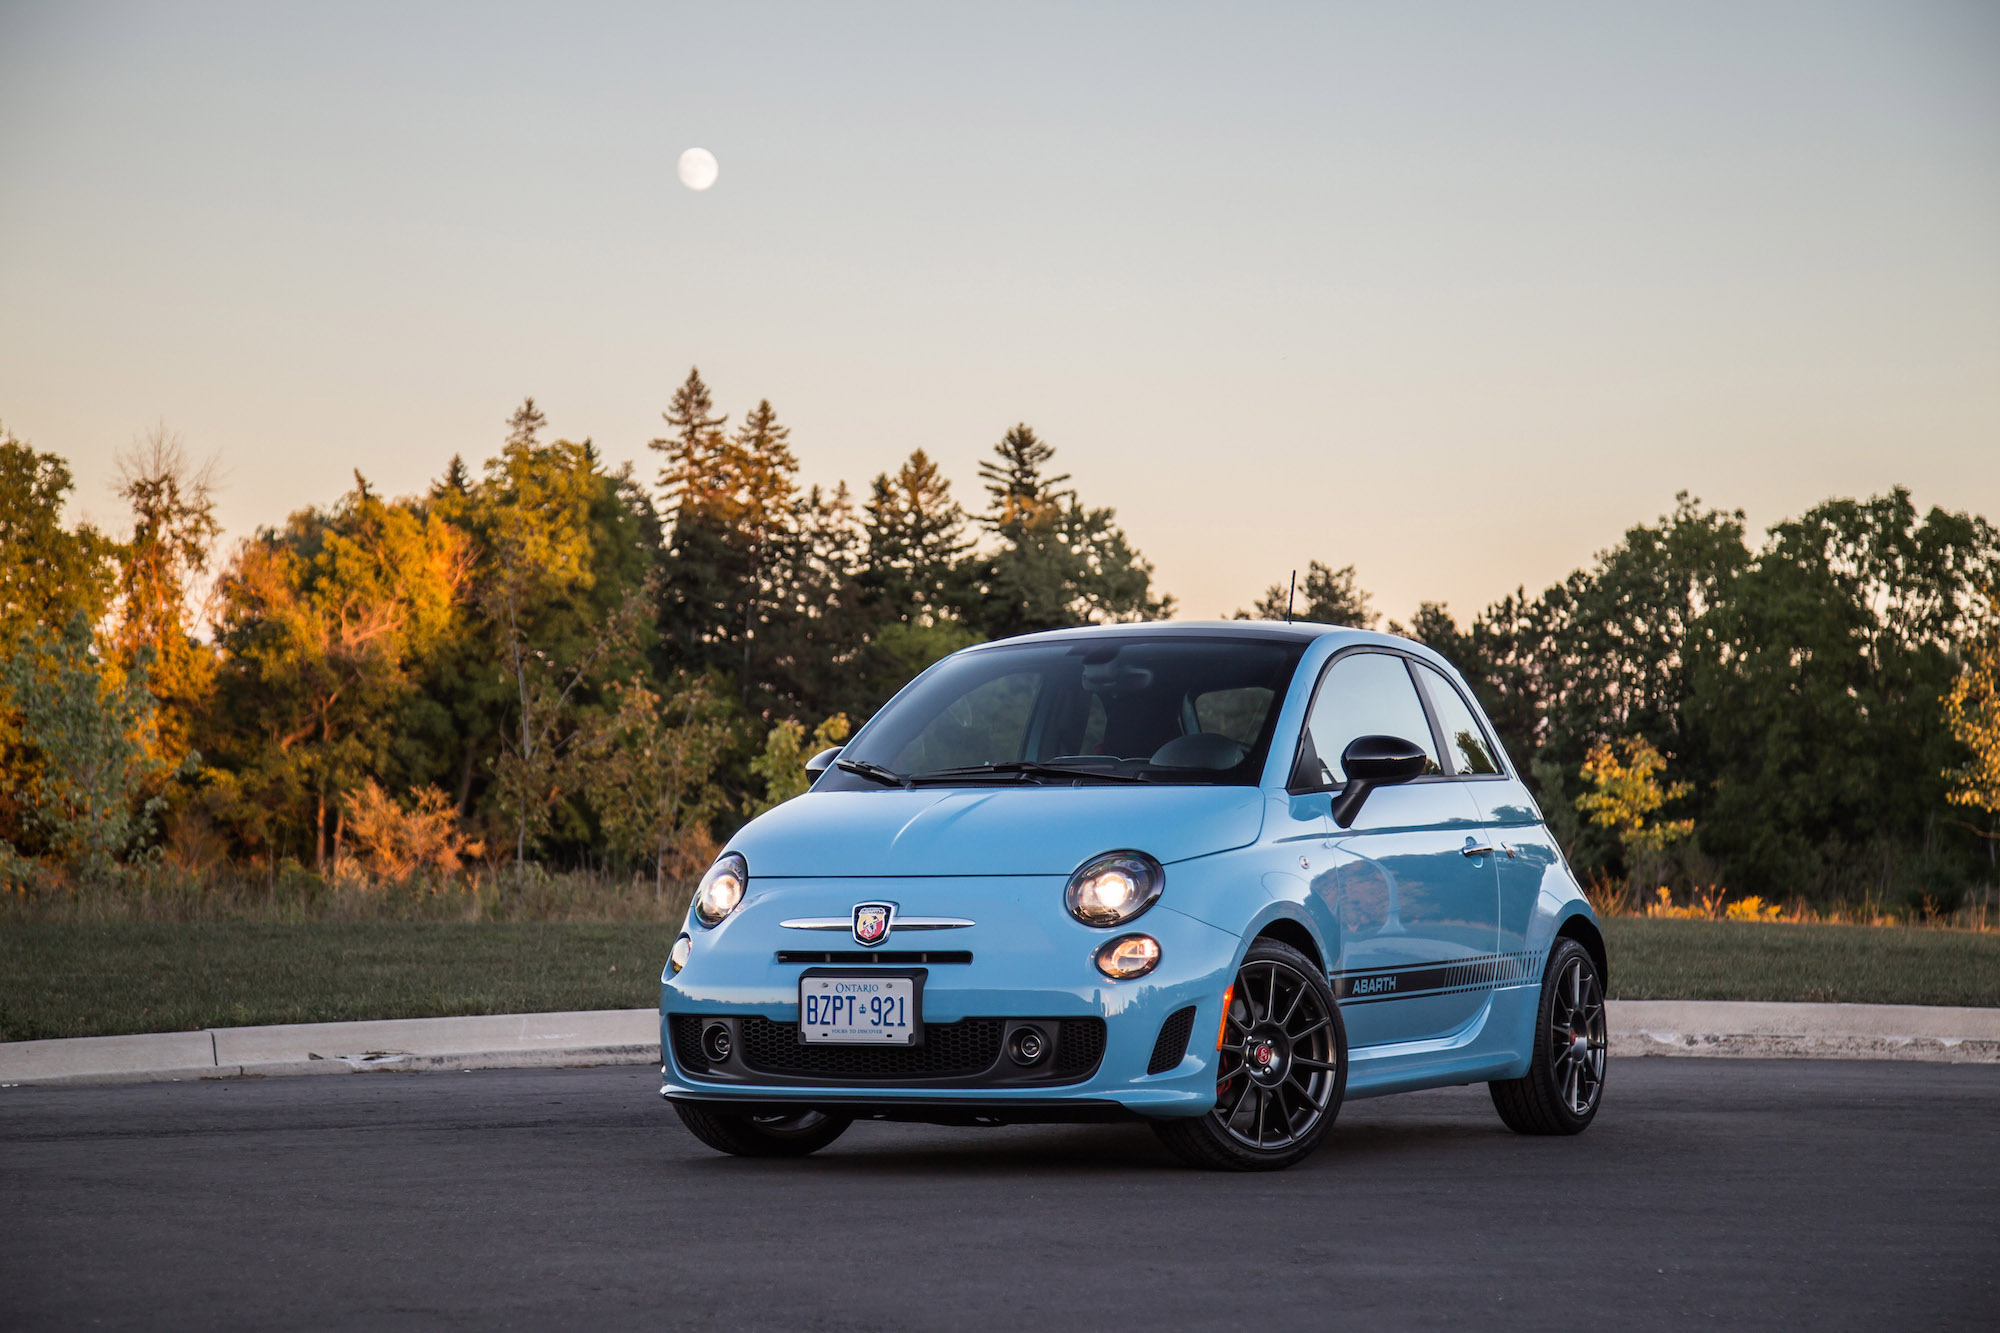 review: 2016 fiat 500 abarth (5mt) | canadian auto review